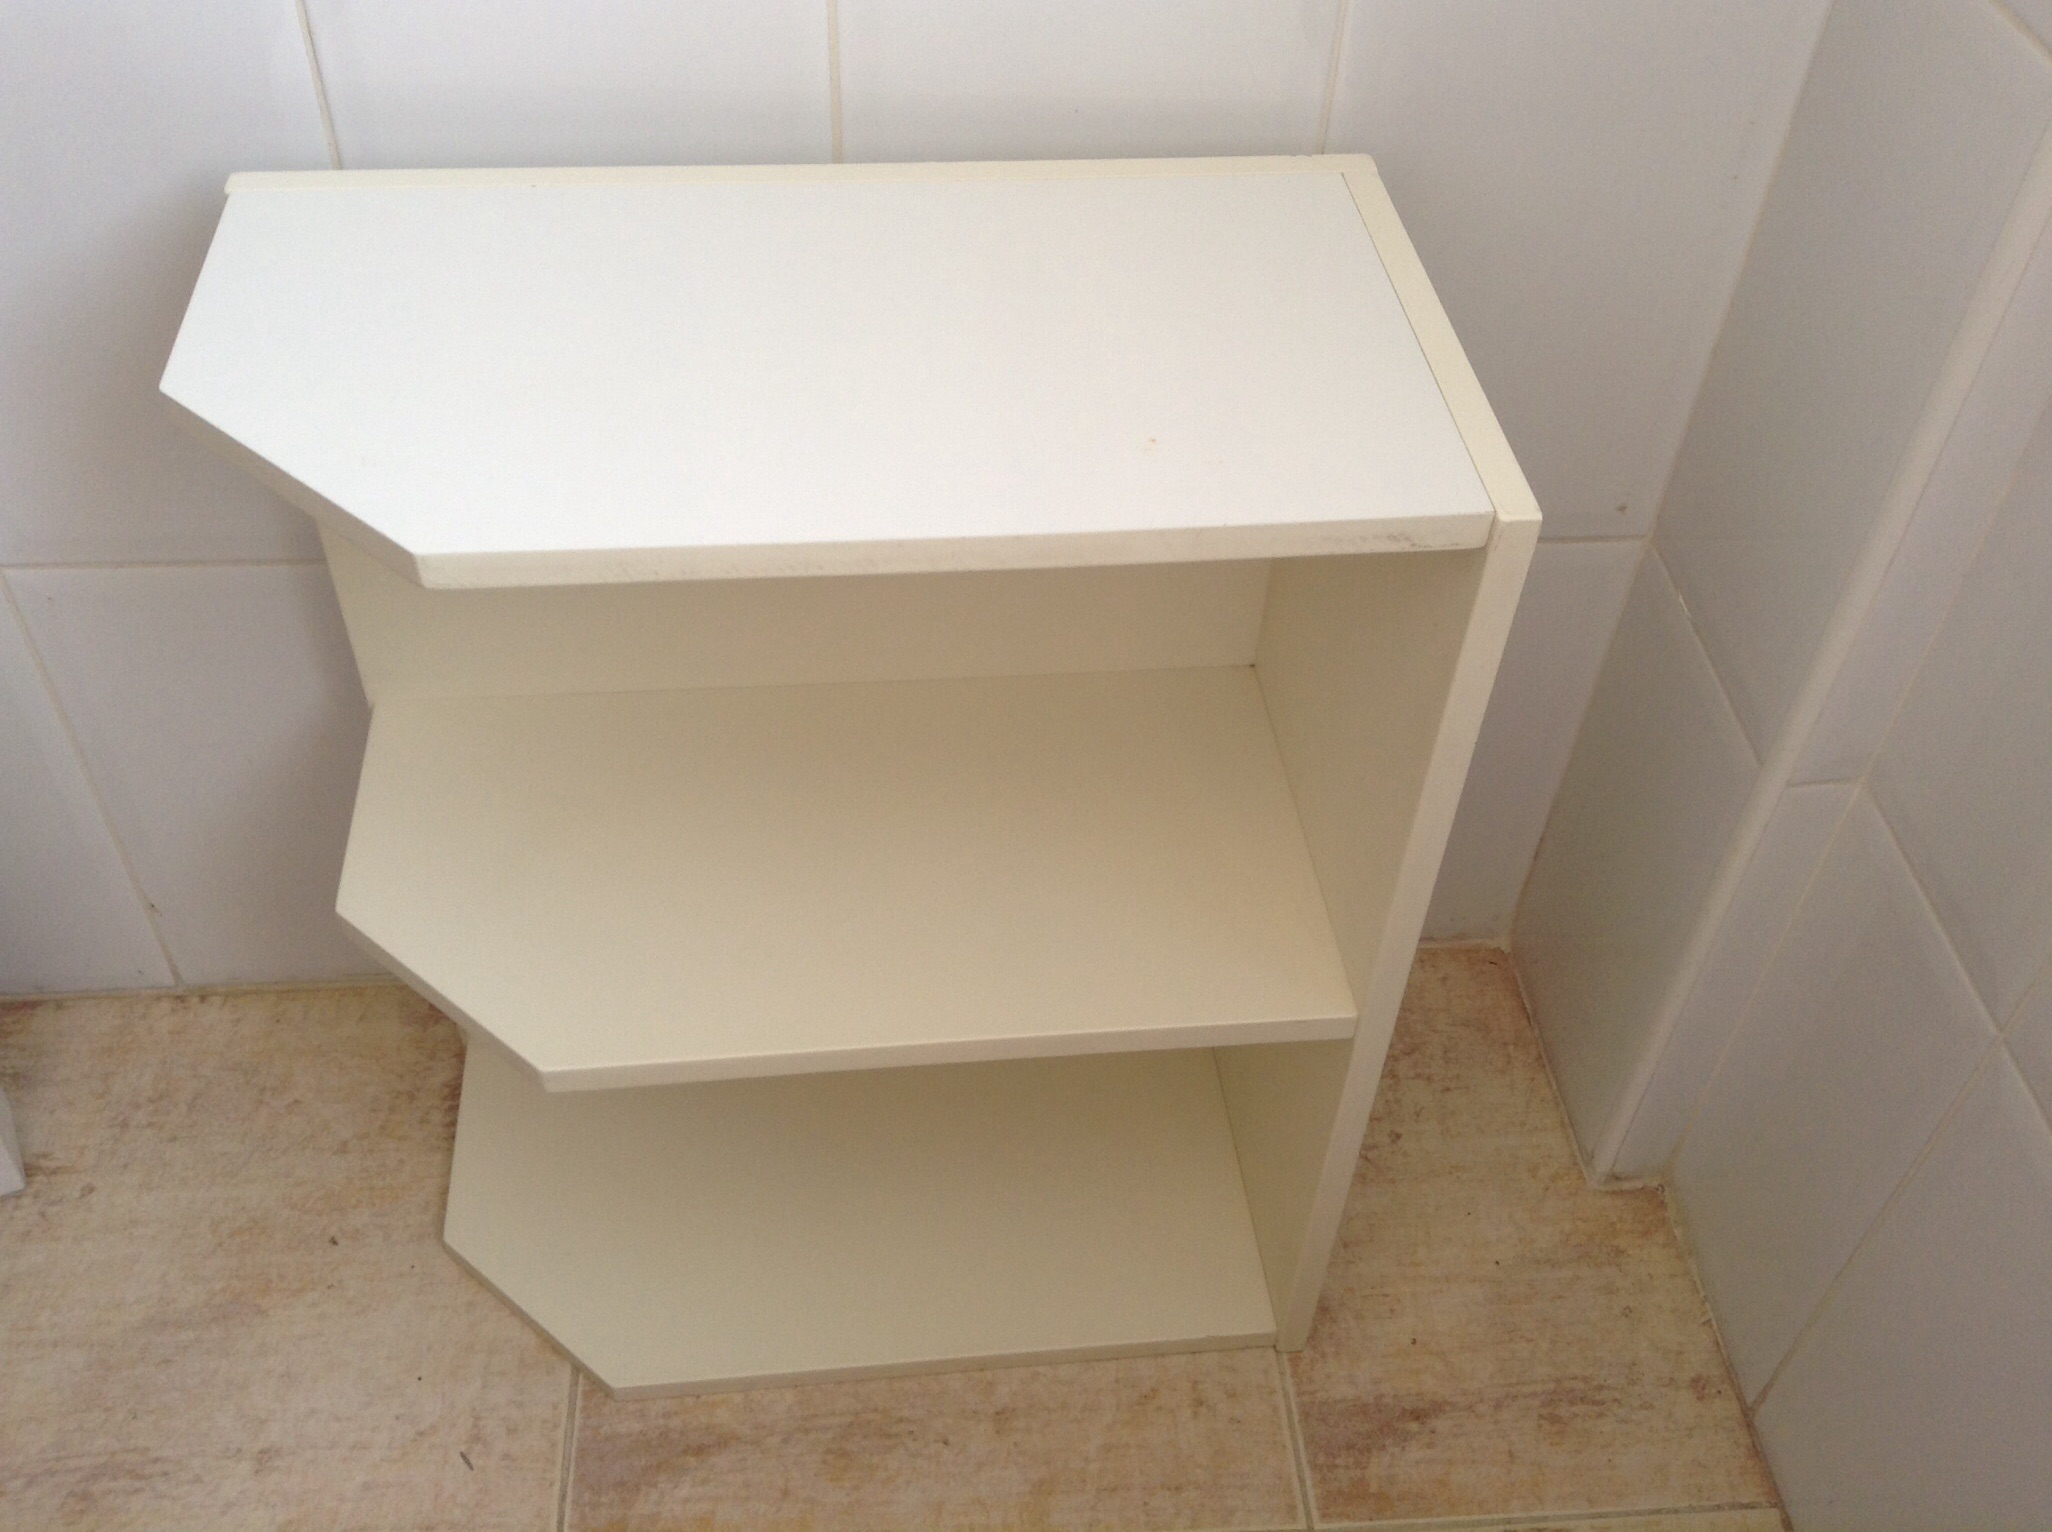 For sale White corner shelf unit Buy and sell items in Las